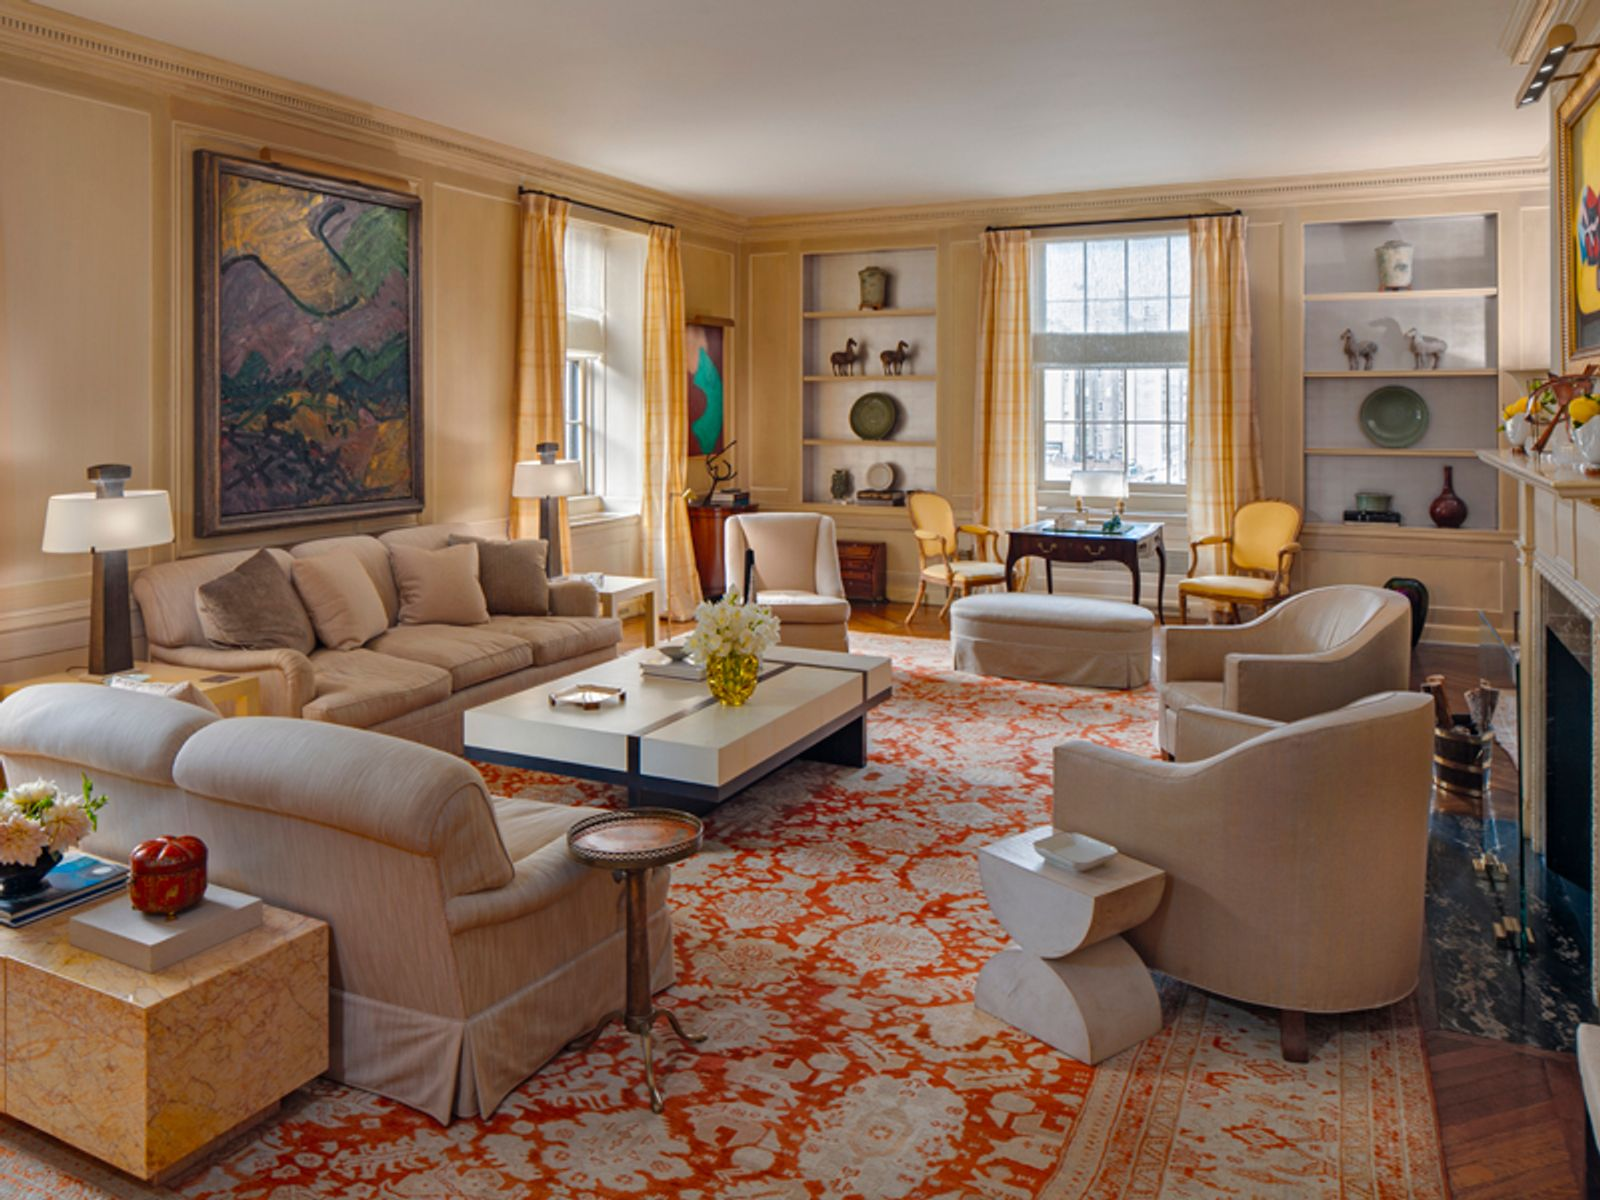 New-Sophisticated Candela On Park Avenue, New York NY Cooperative - New York City Real Estate